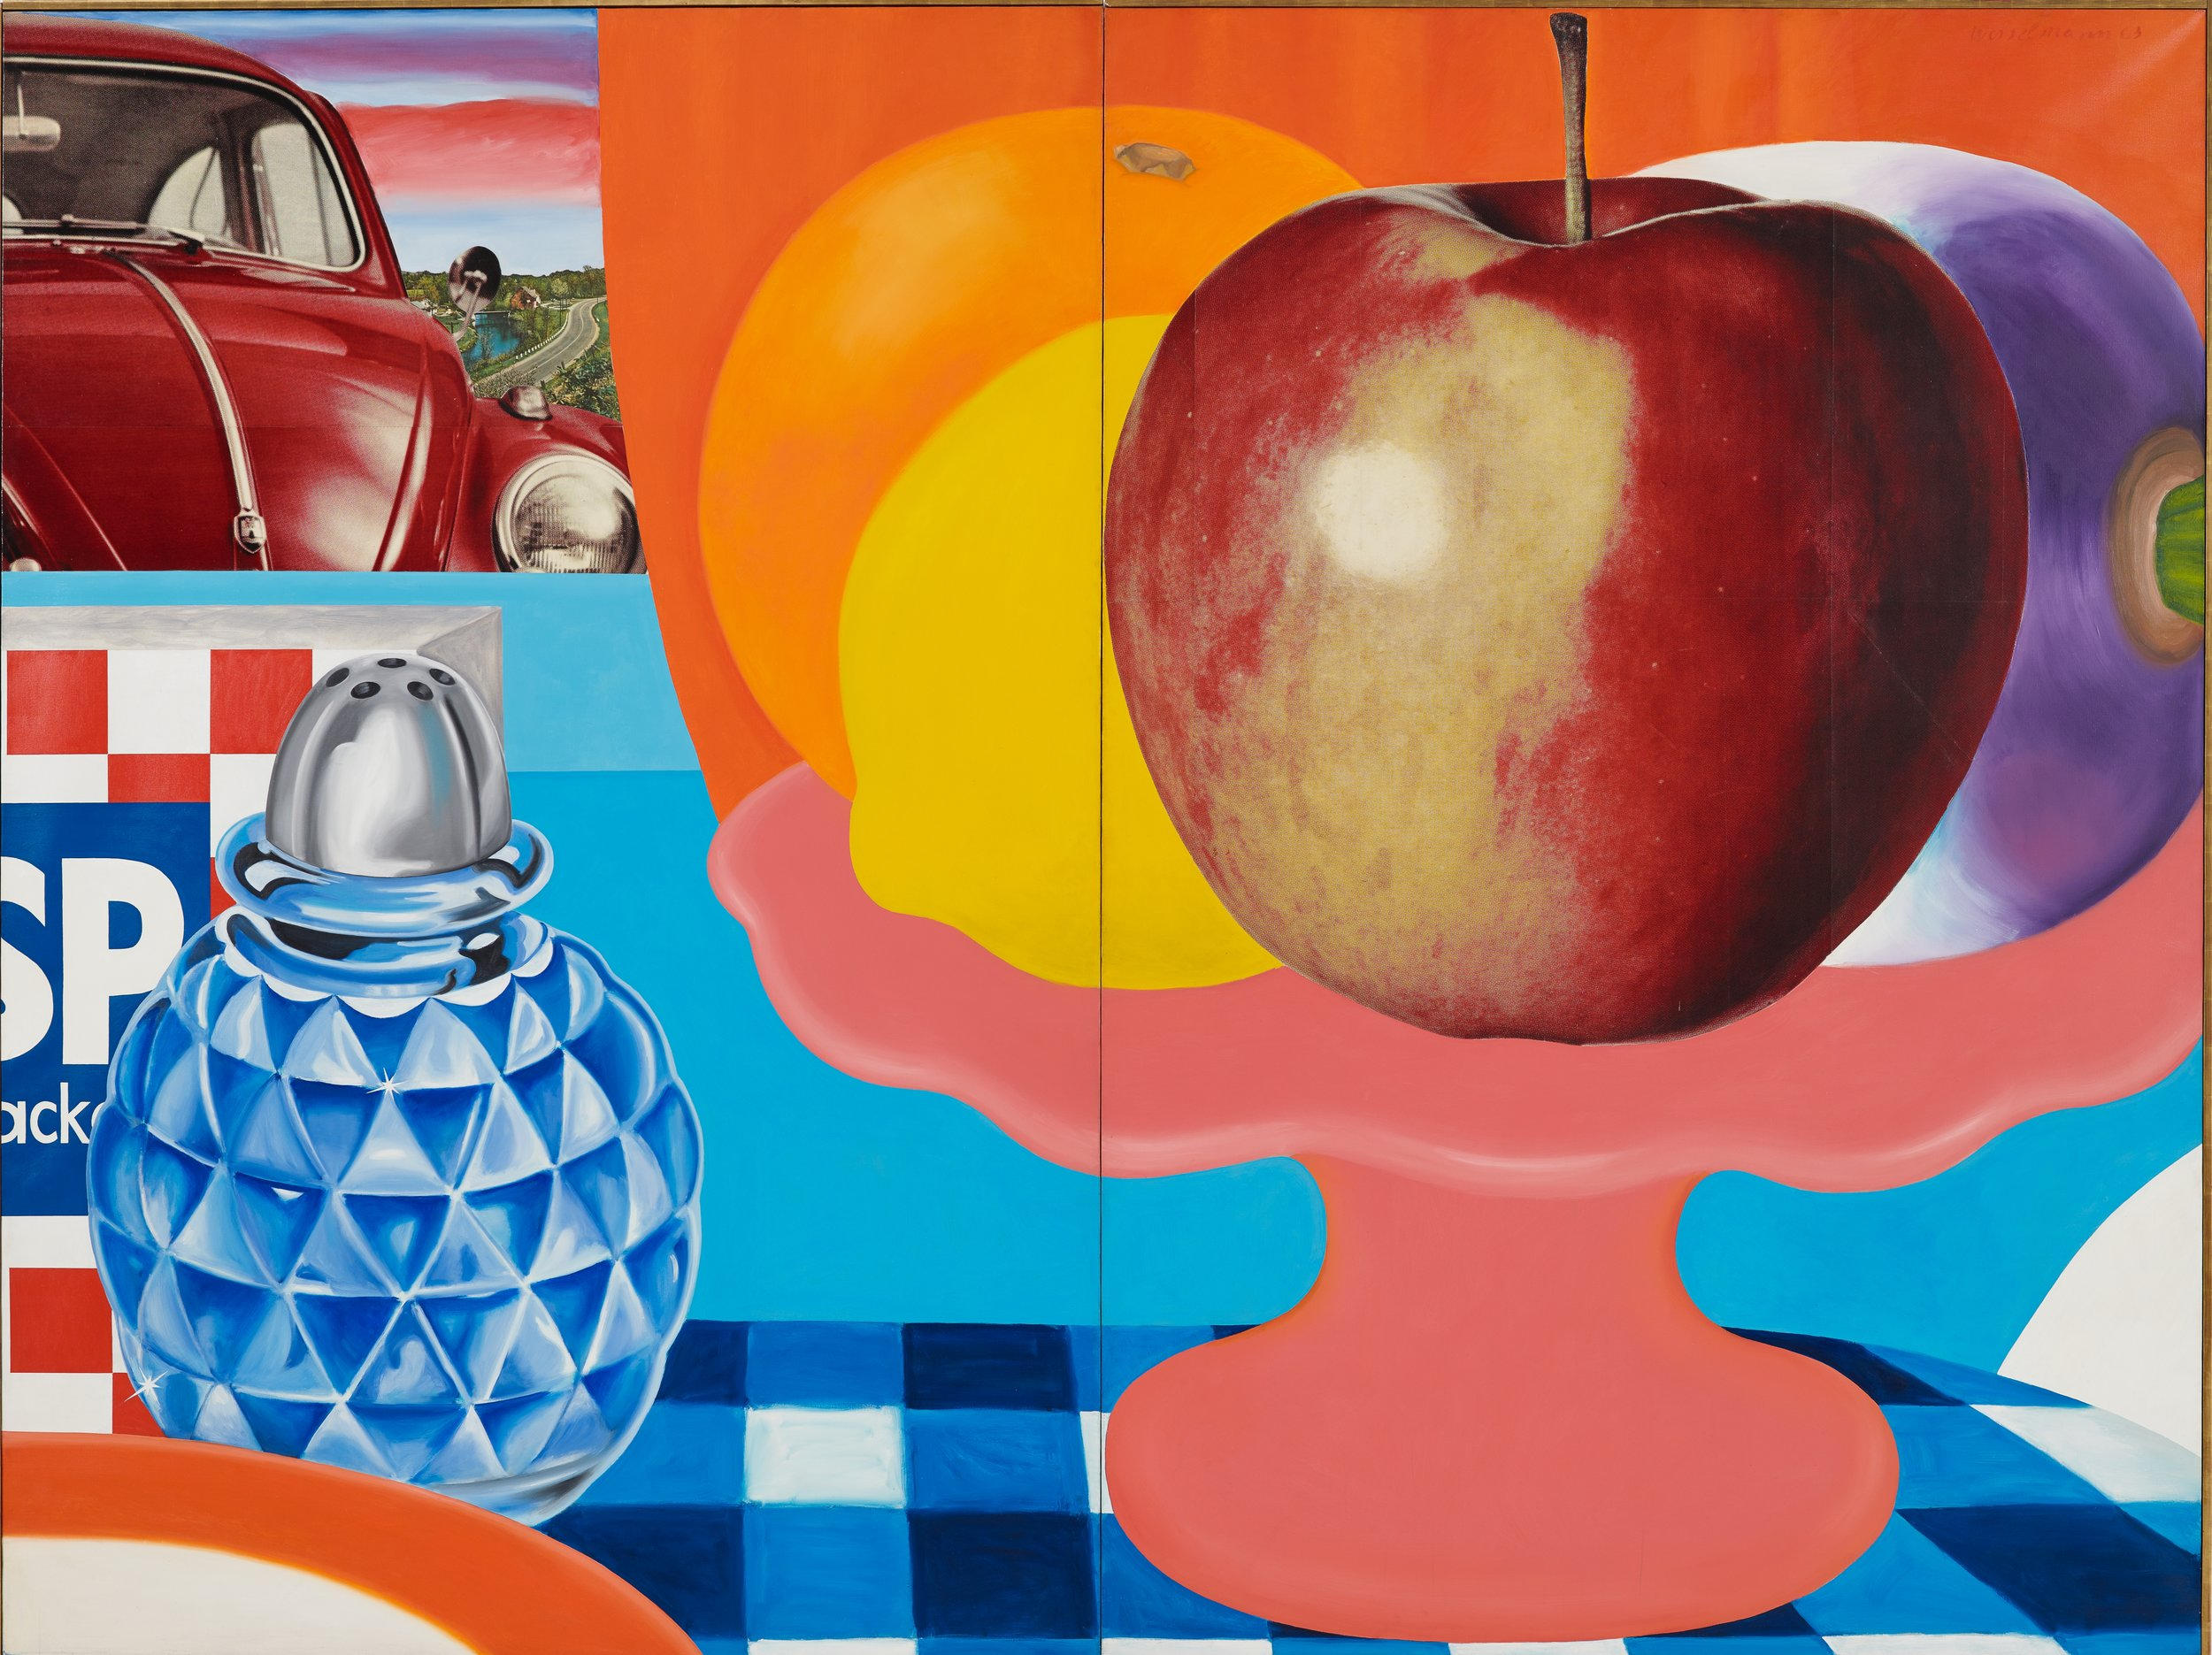 TOM WESSELMANN  Still Life #29 , 1963 Oil and printed paper collaged on canvas 9 x 12 feet 274.3 x 365.8 cm   Art © Estate of Tom Wesselmann/Licensed by VAGA, New York, NY    Photo: Jeffrey Sturges Courtesy of The Tom Wesselmann Estate and Gagosian